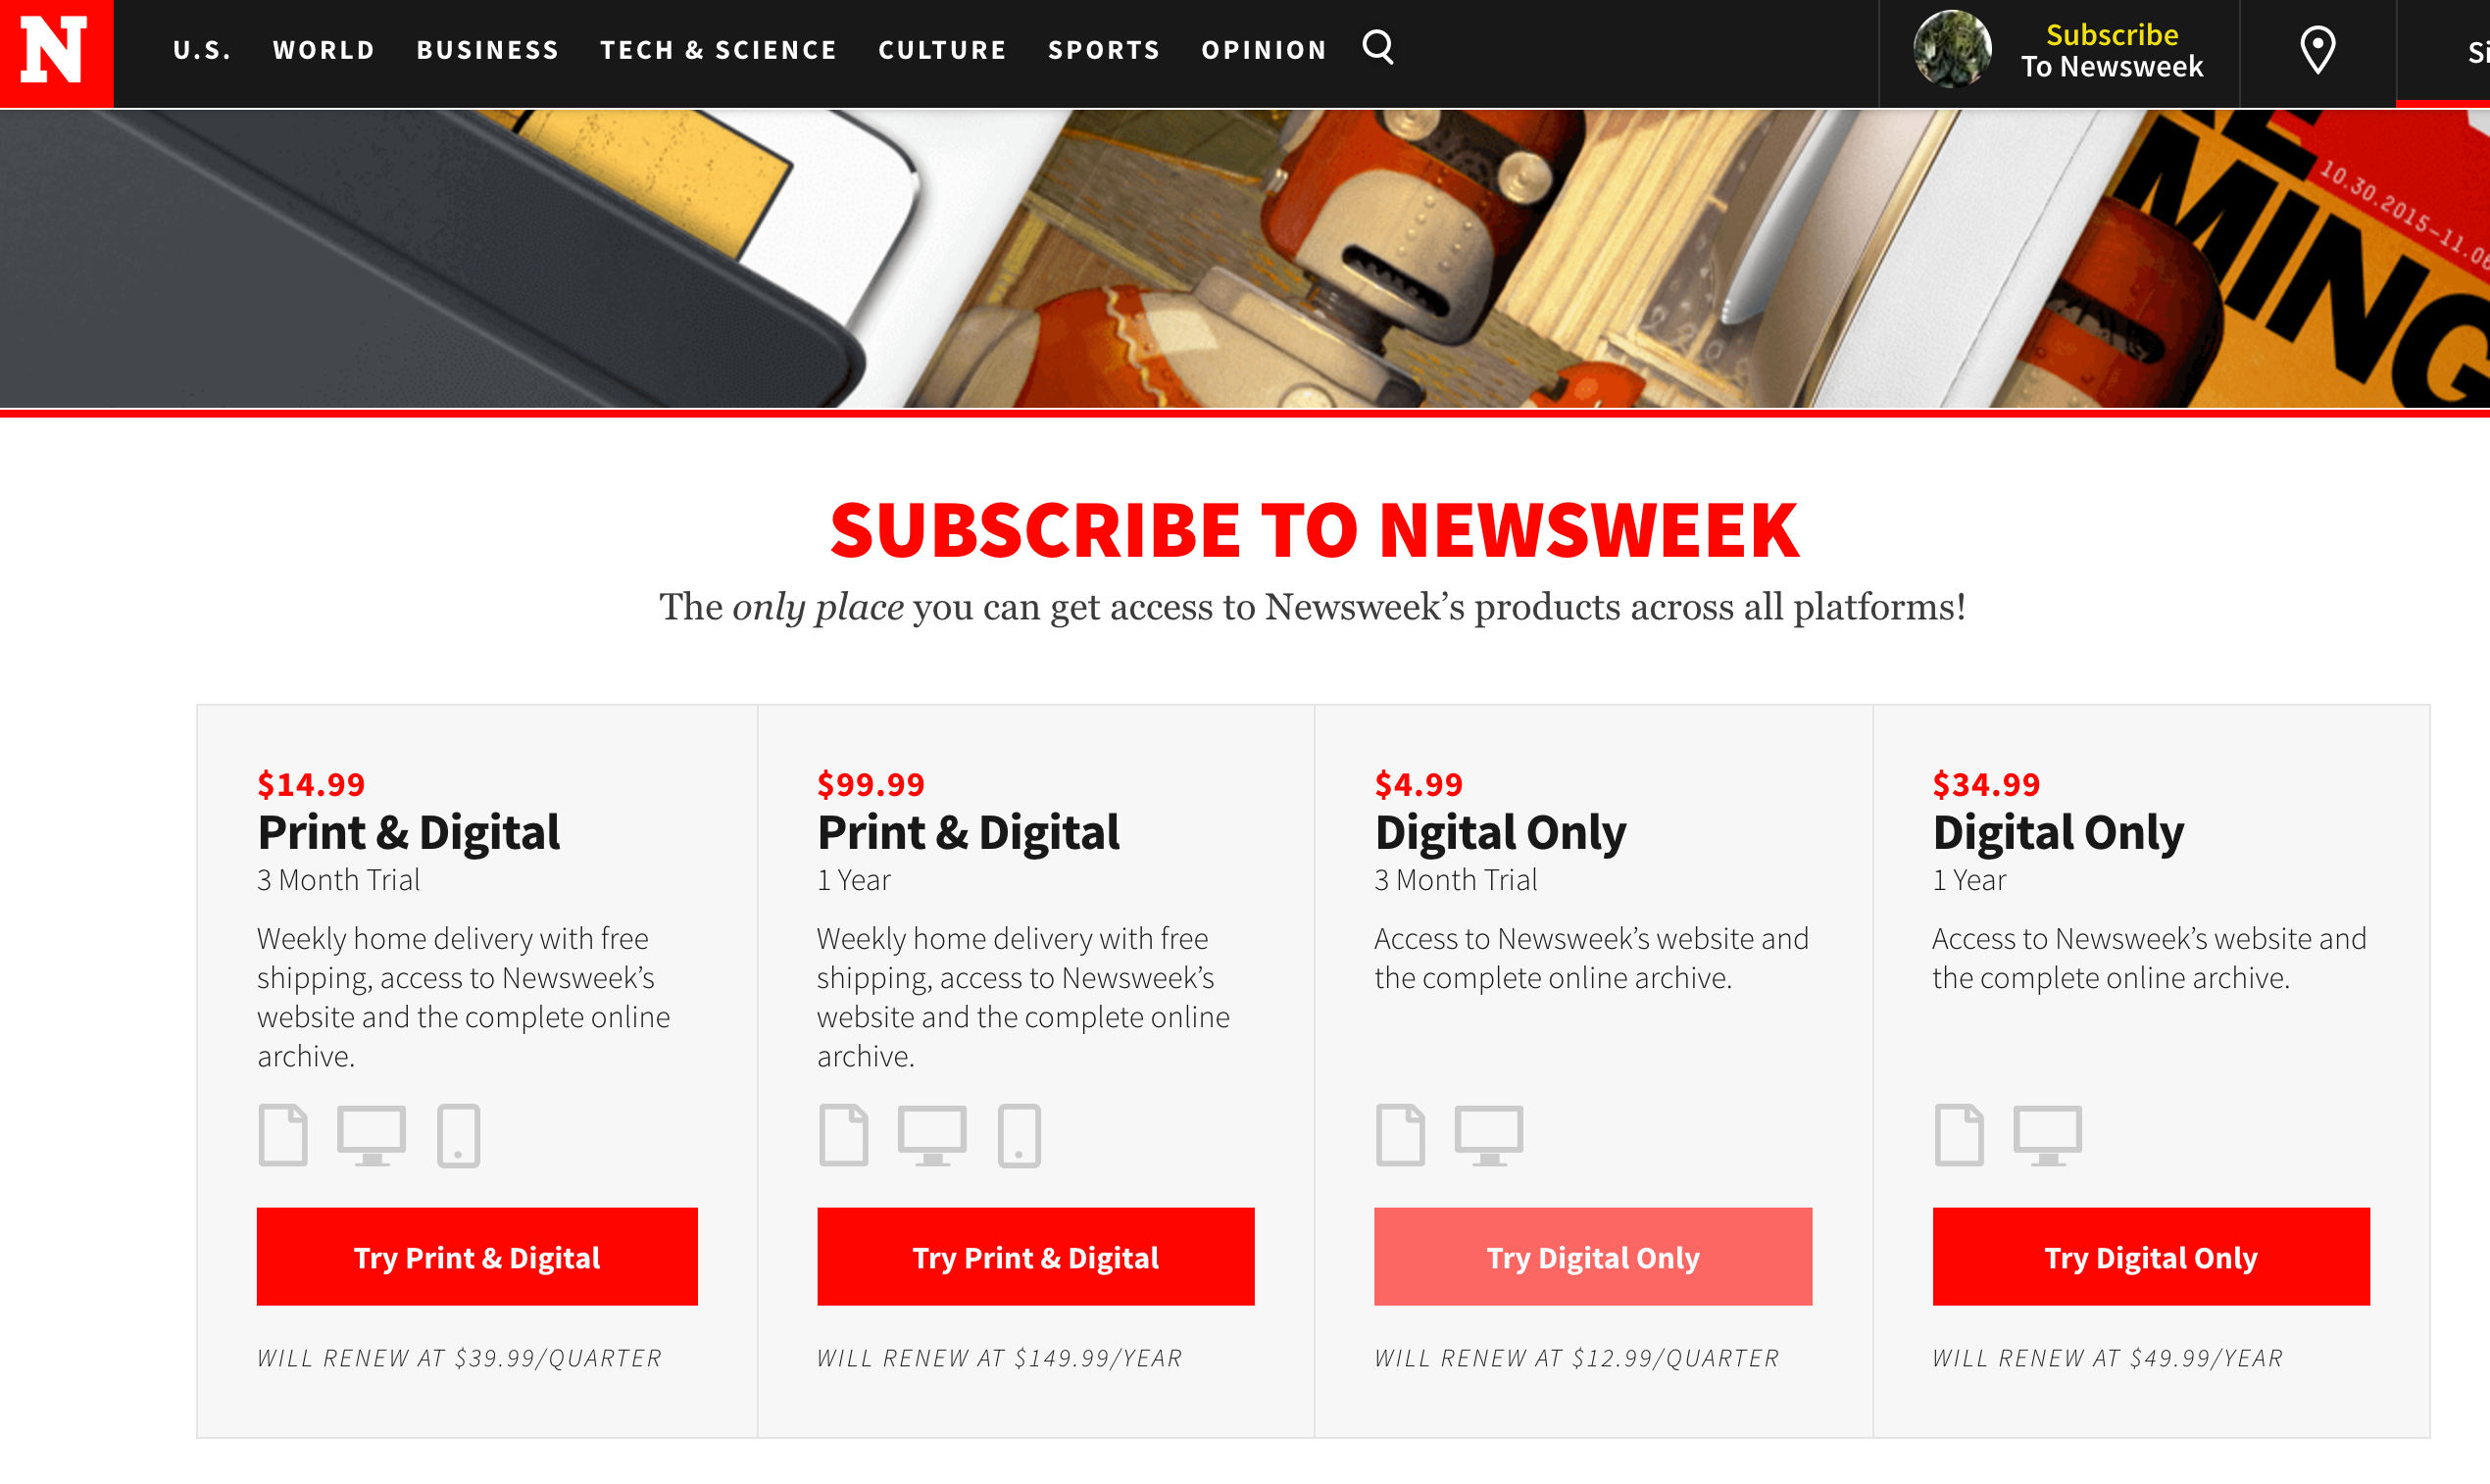 Magazine Subscription Websites: 4 Huge Mistakes You Might Be Making